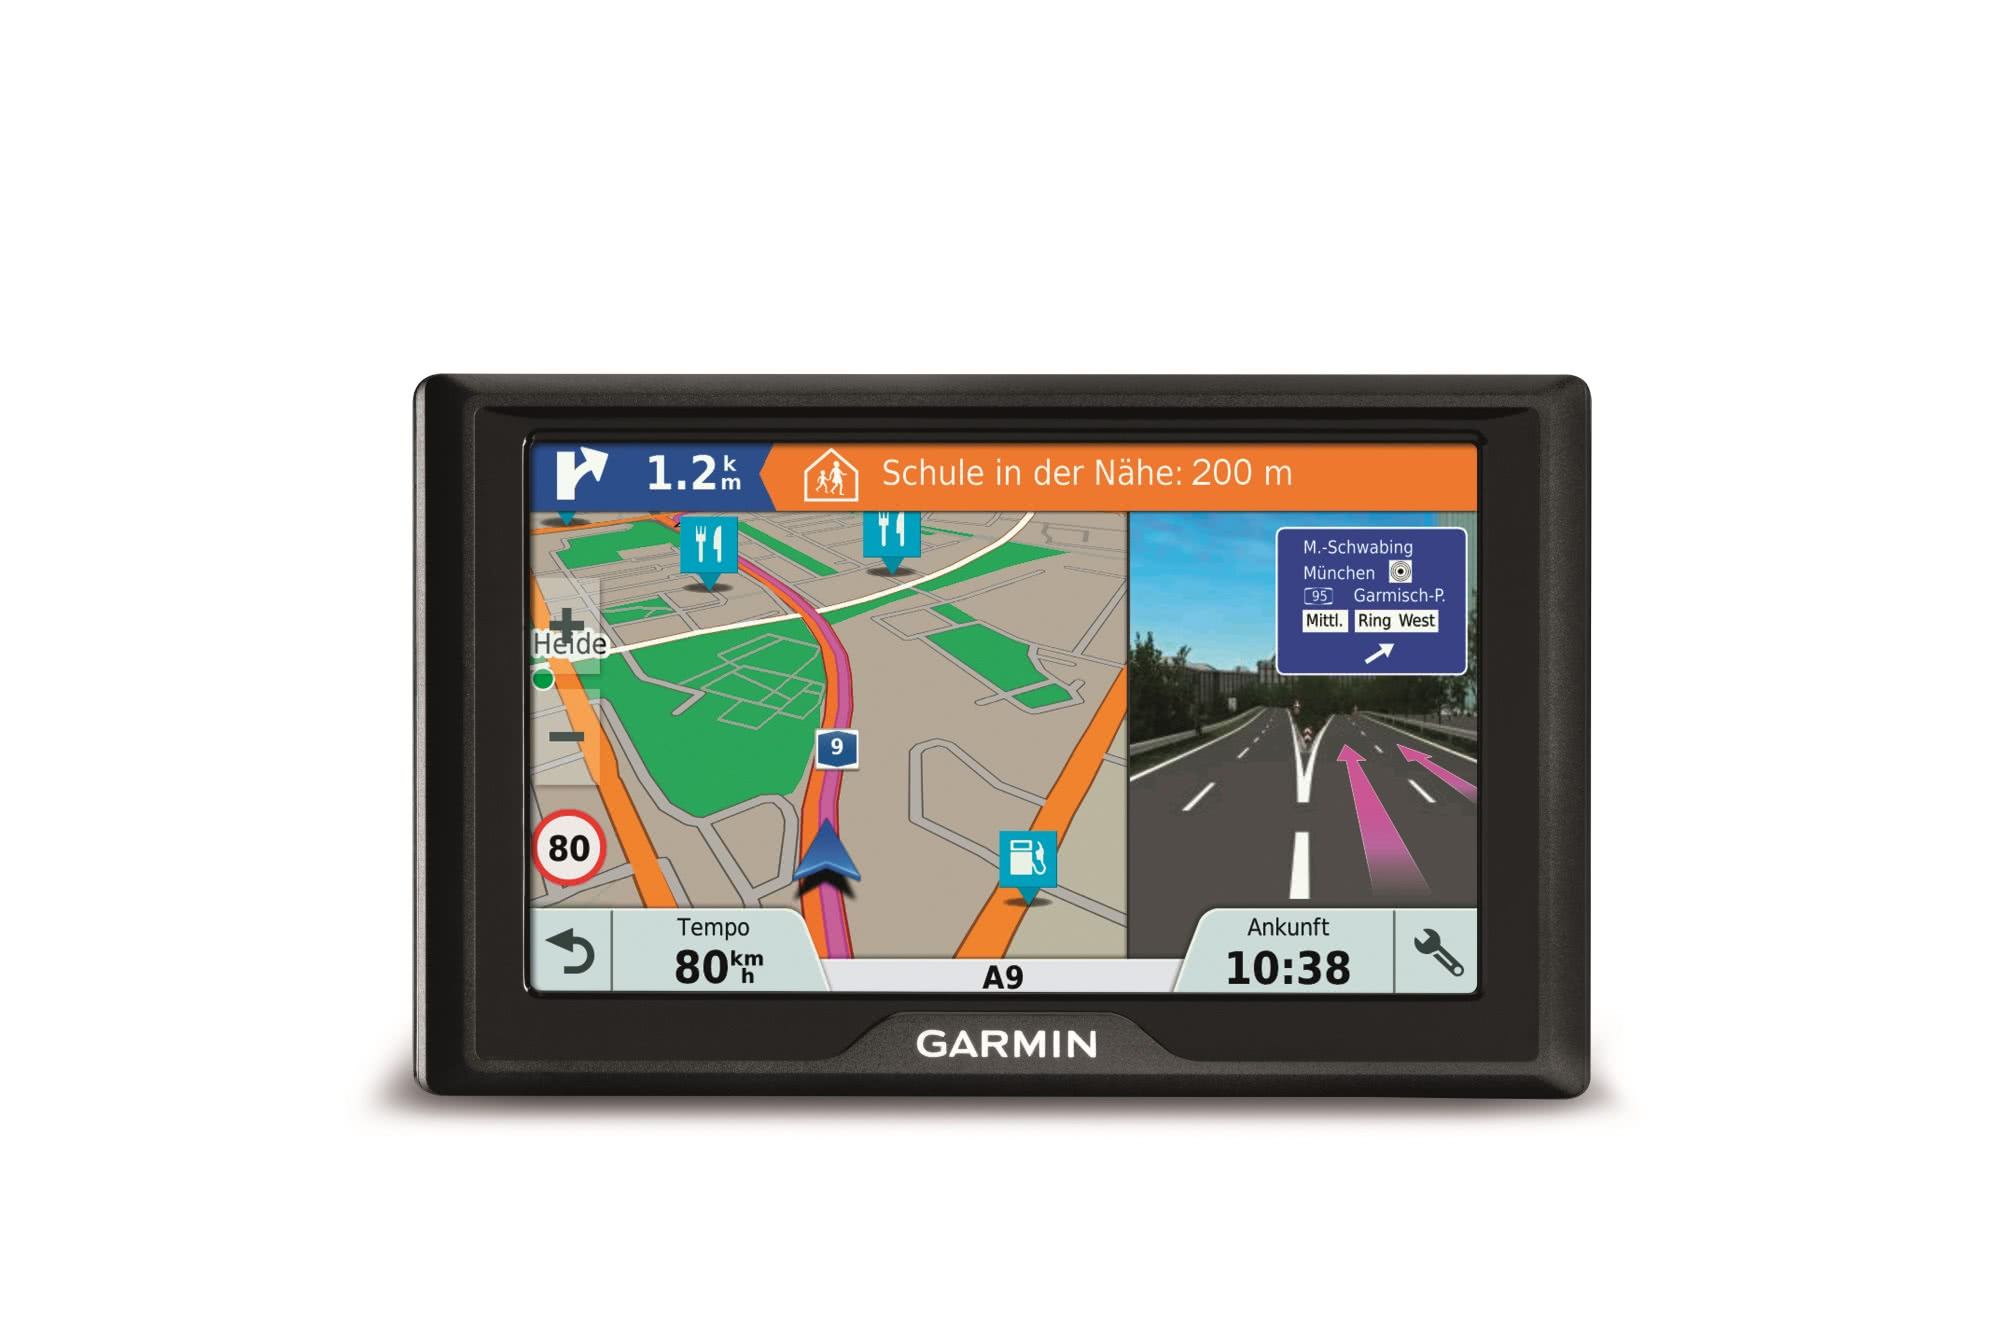 garmin drive 5s ce navigationsger t inkl sicherheitspaket live traffic infos tripadvisor. Black Bedroom Furniture Sets. Home Design Ideas